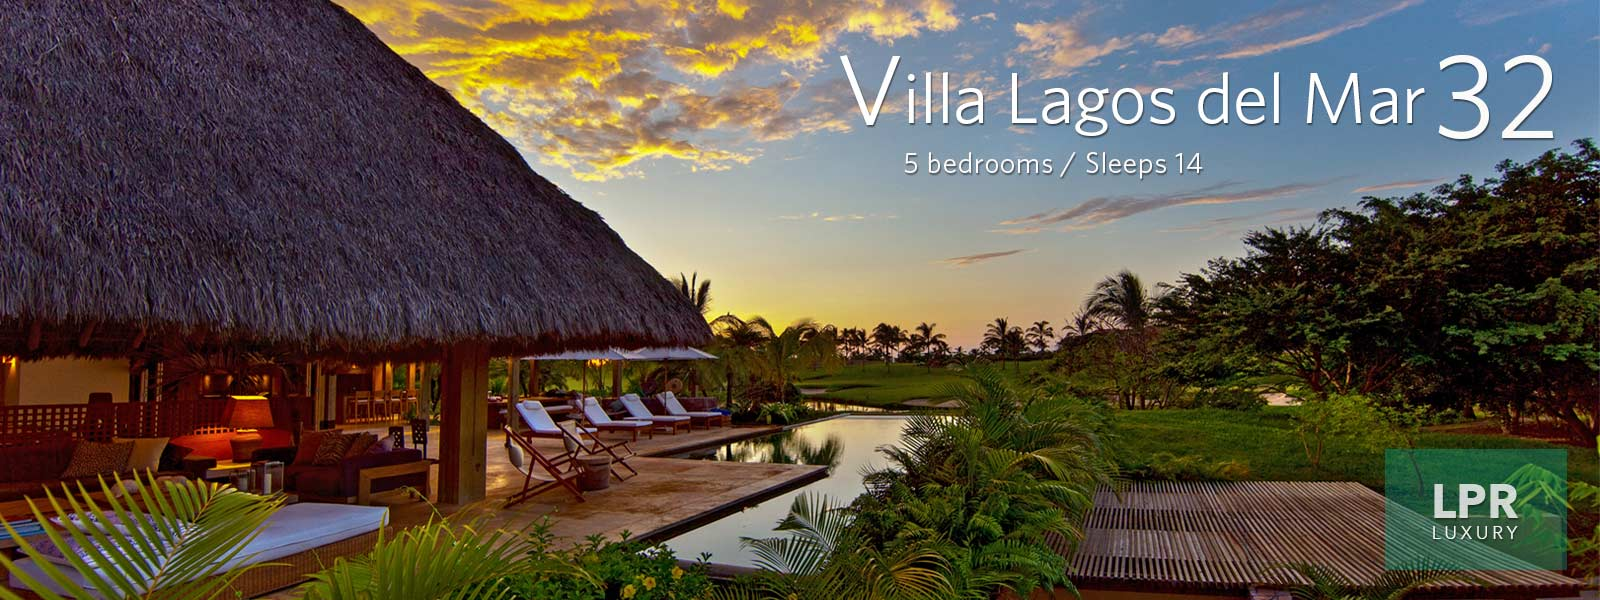 Villa La Punta 9 - Luxury Punta Mita Real Estate and Vacation Rentals Villas